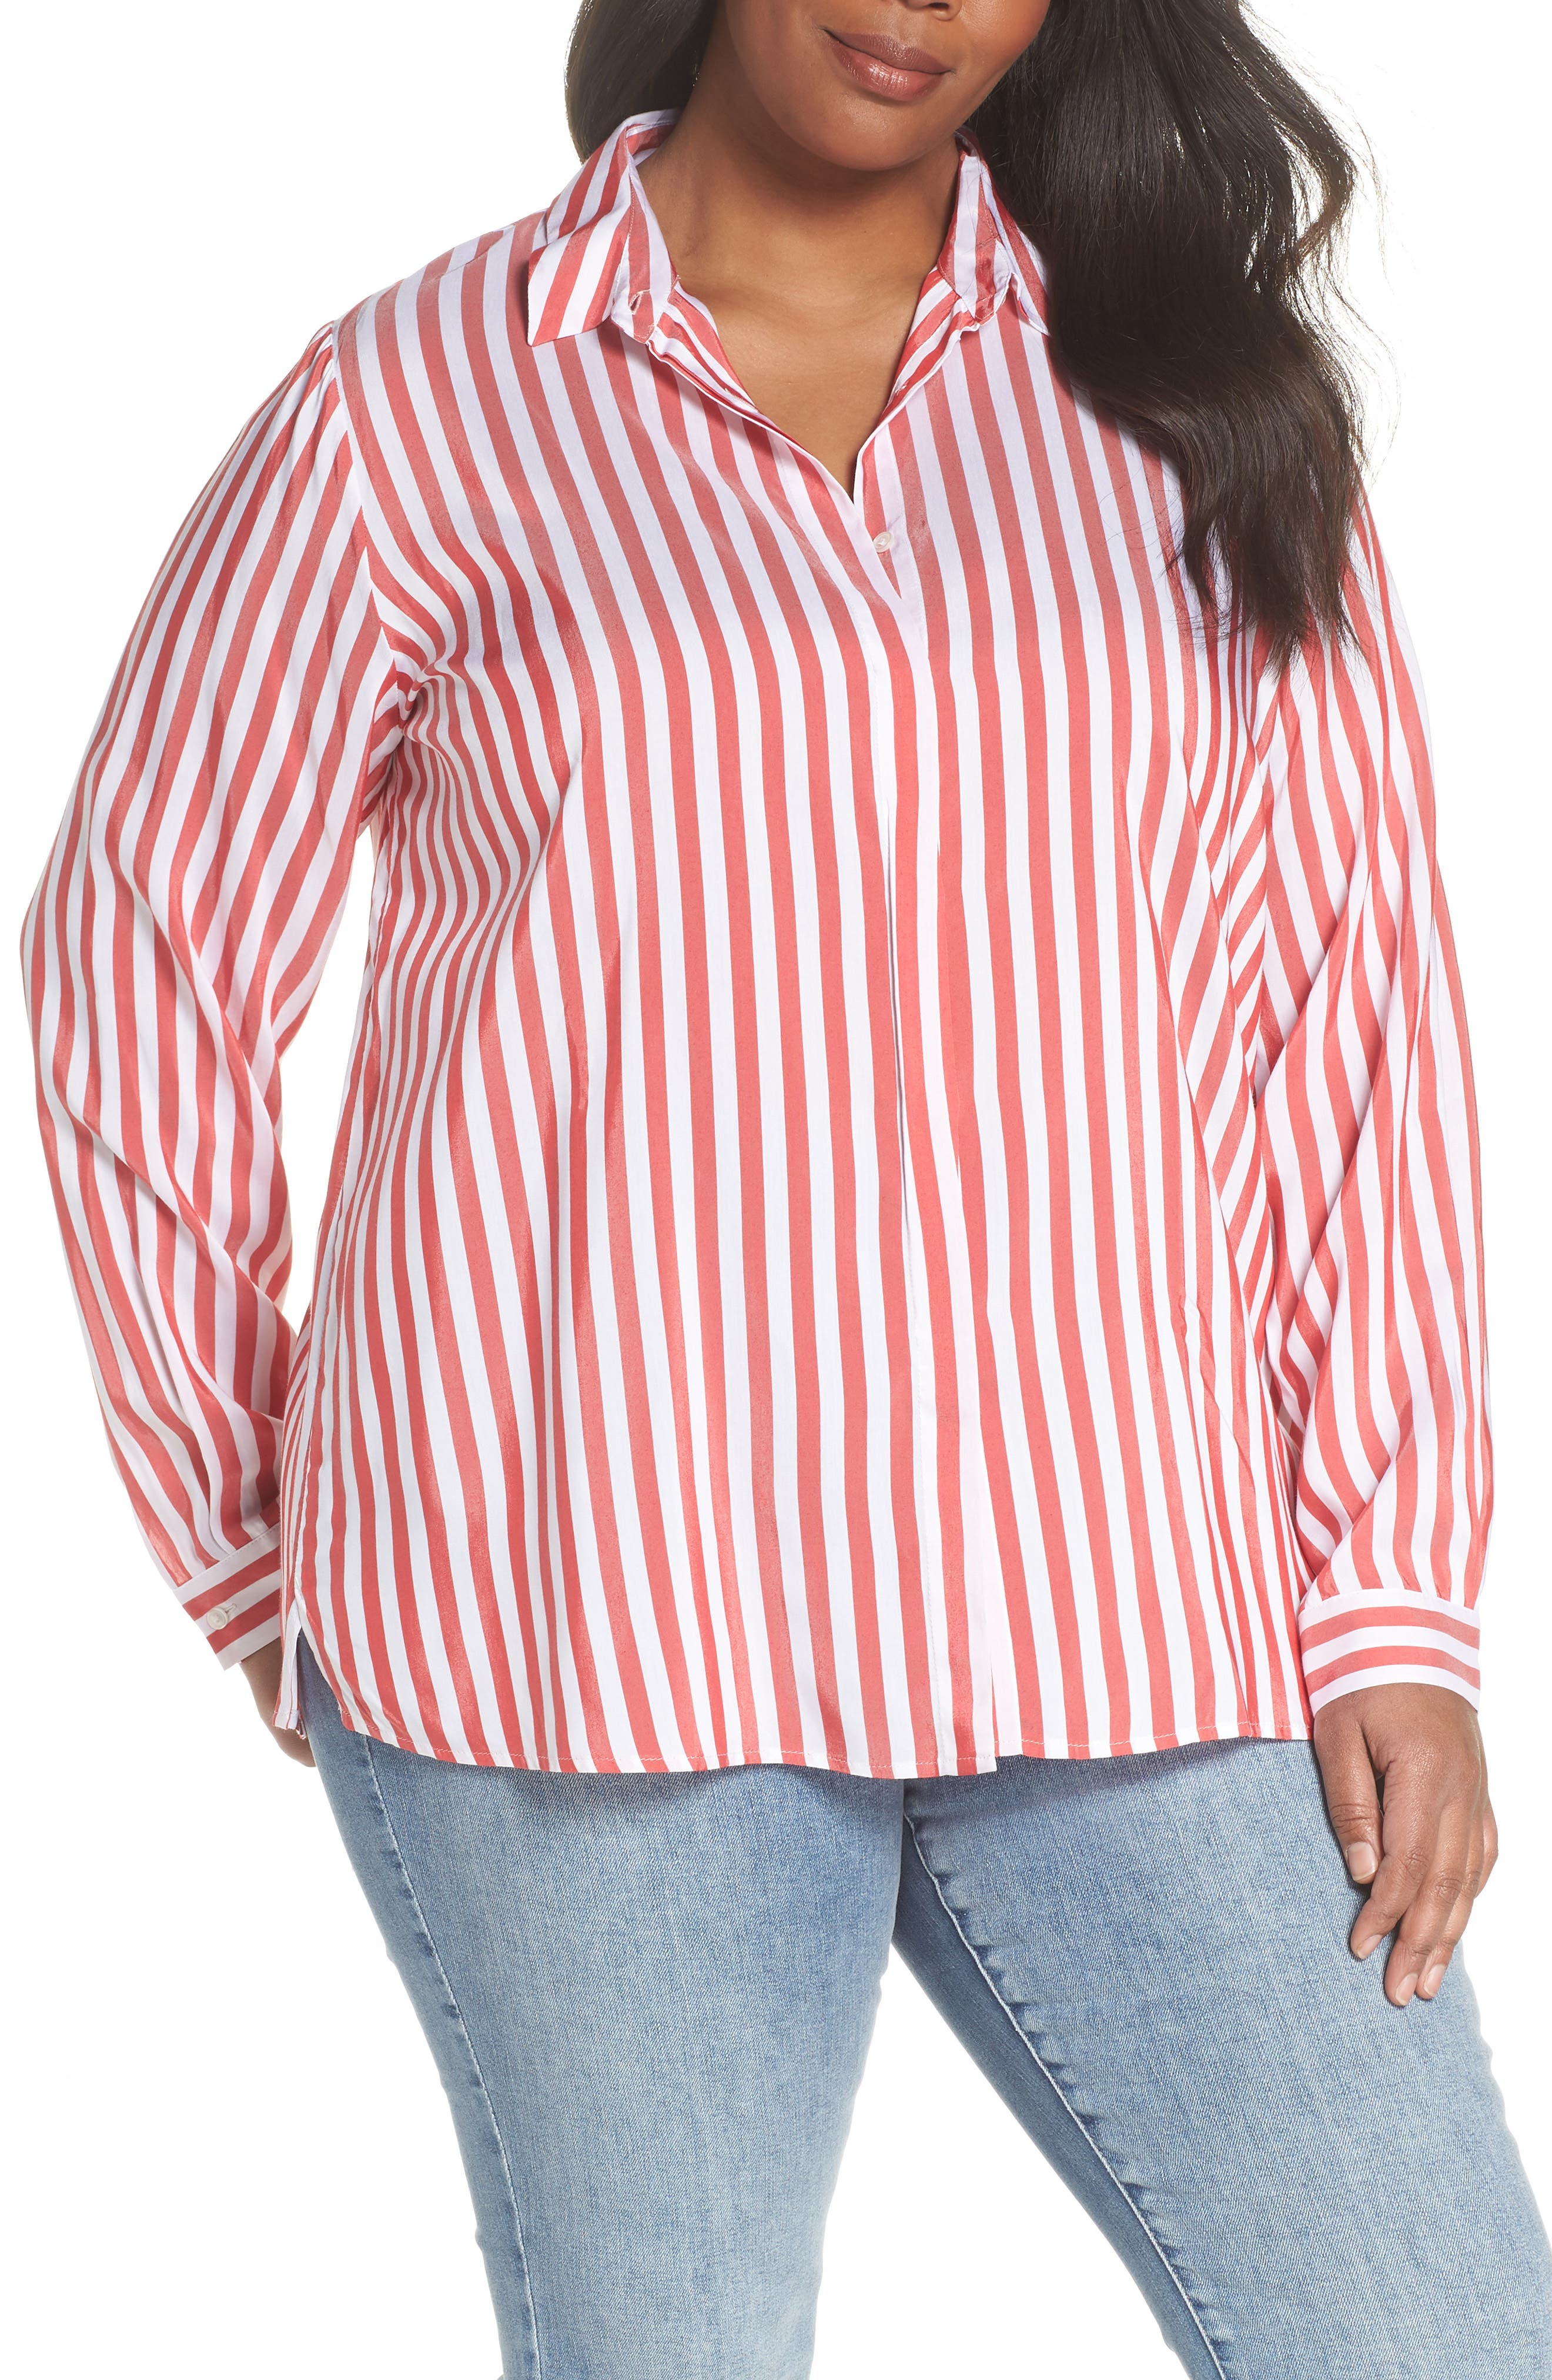 Stripe Blouse,                             Main thumbnail 1, color,                             Red/ White Stripe